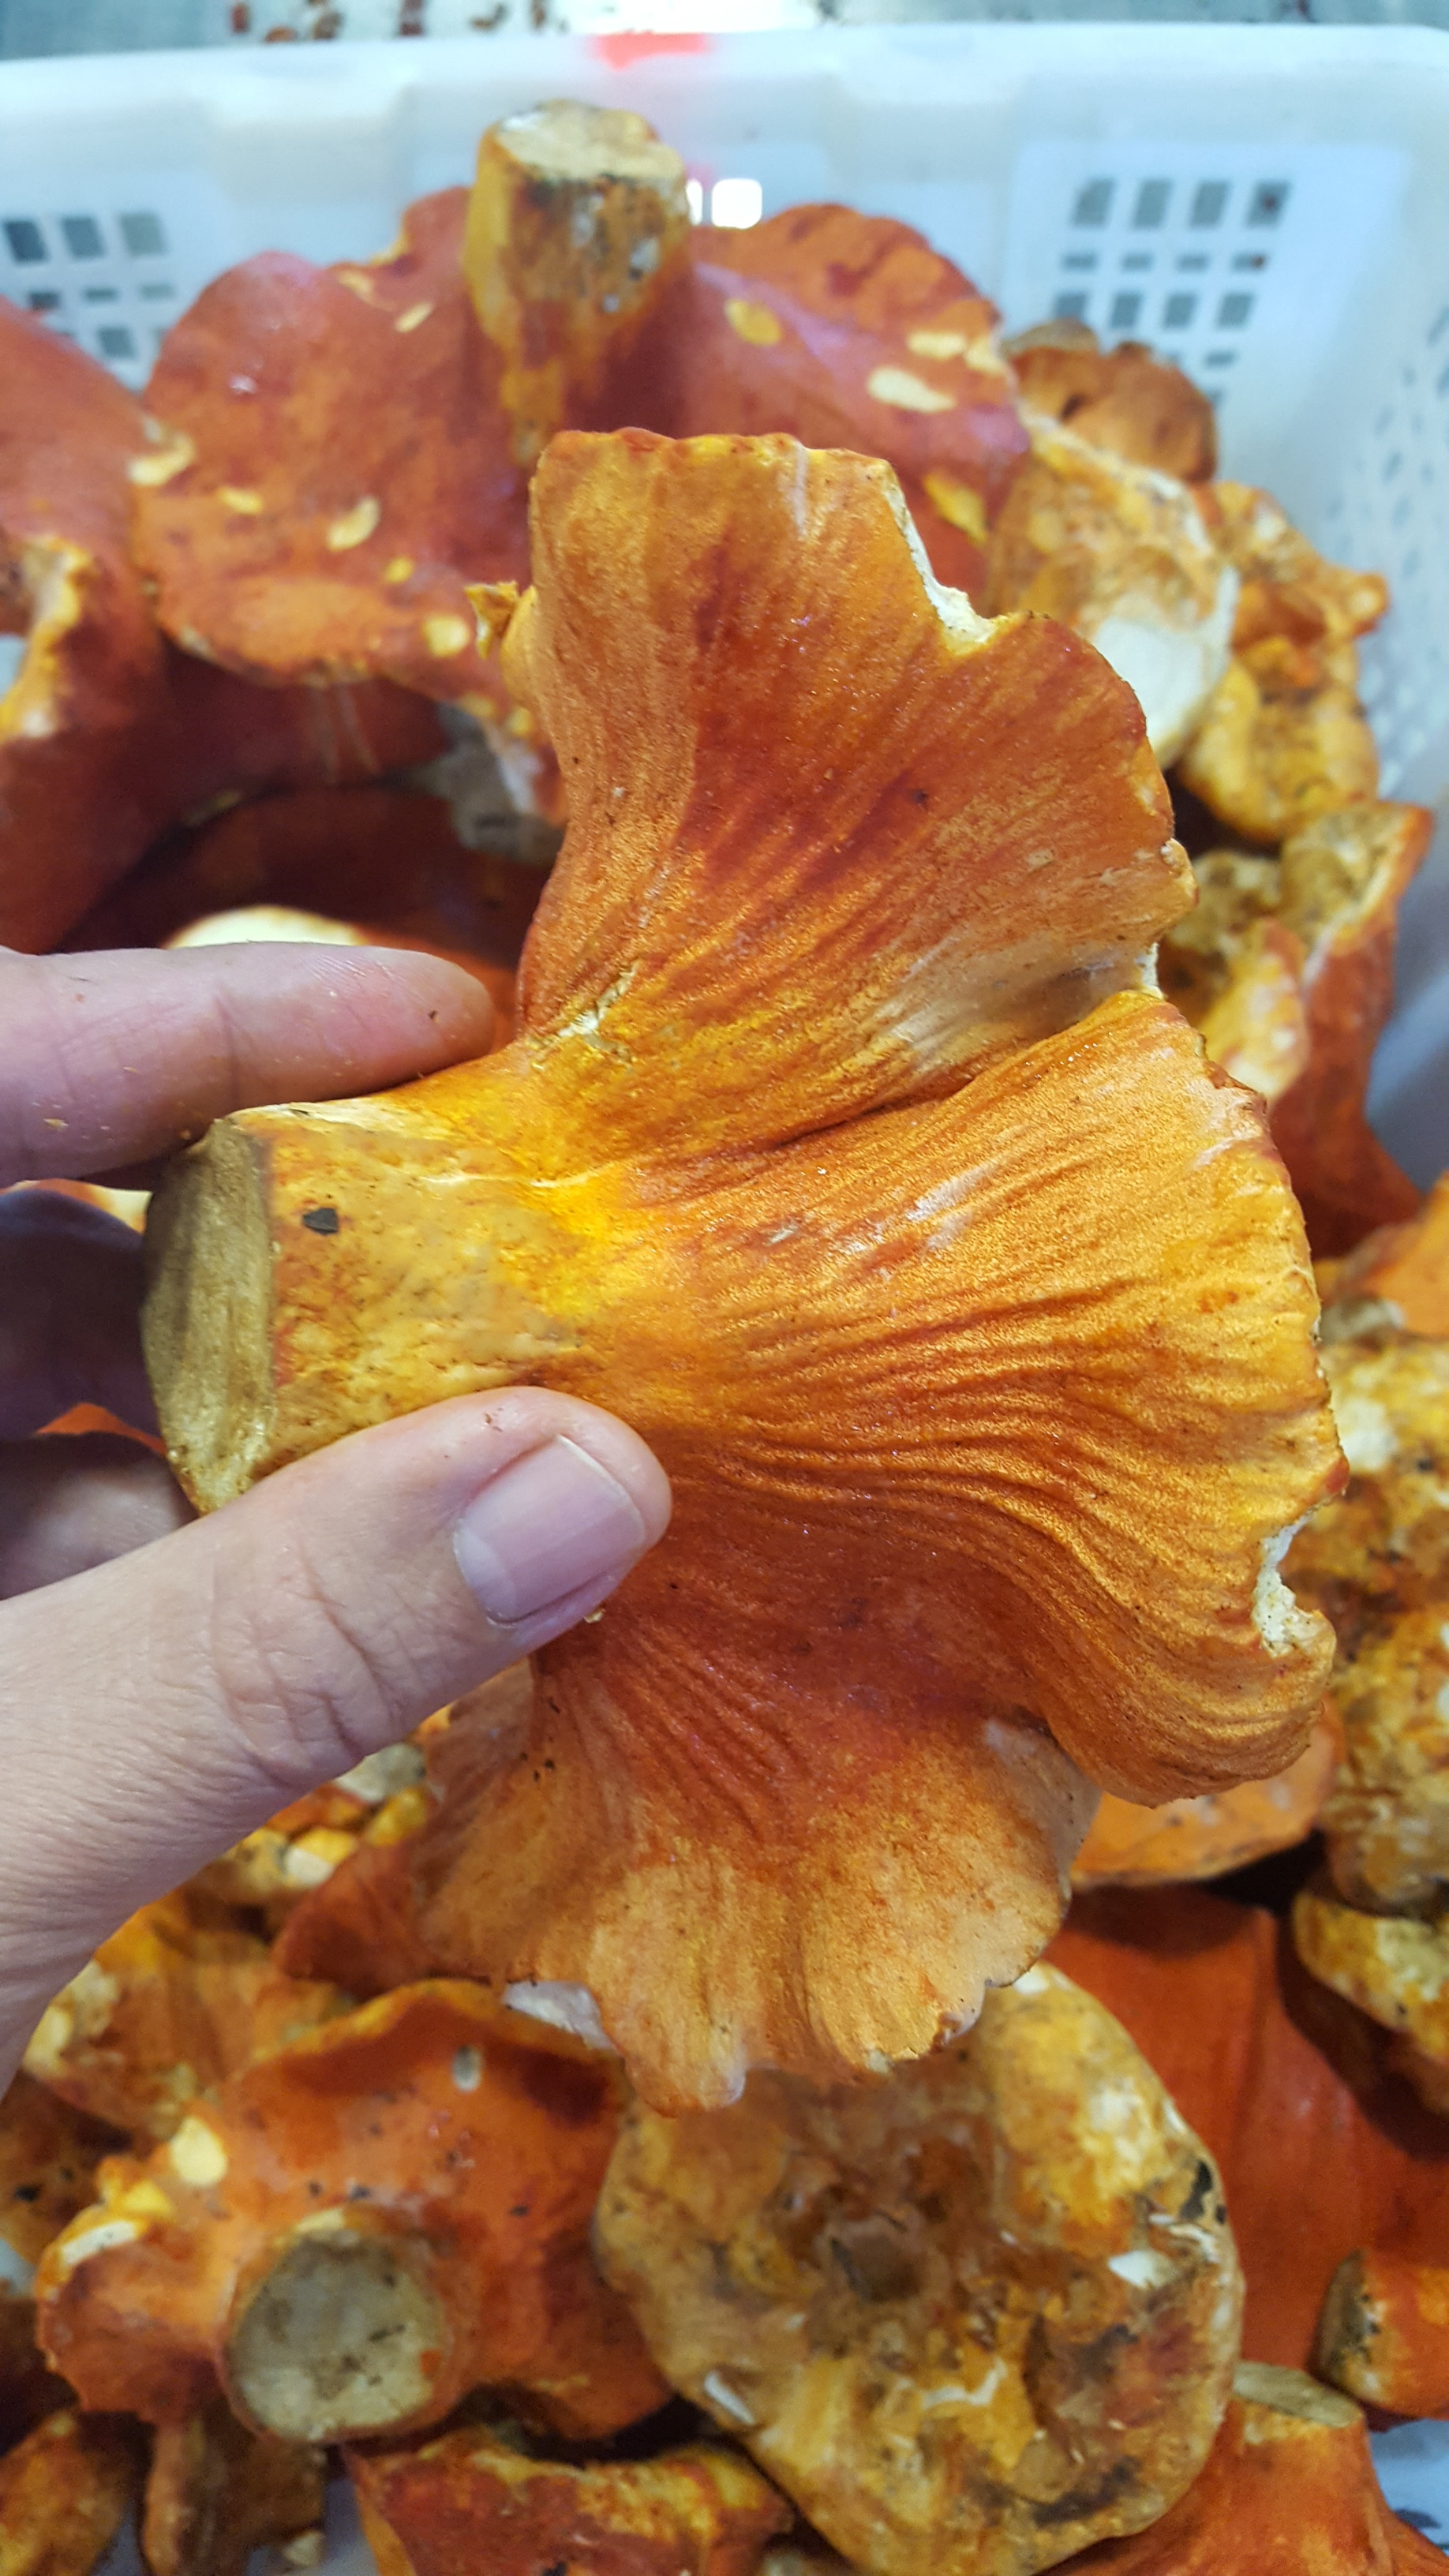 Beautiful lobster mushrooms